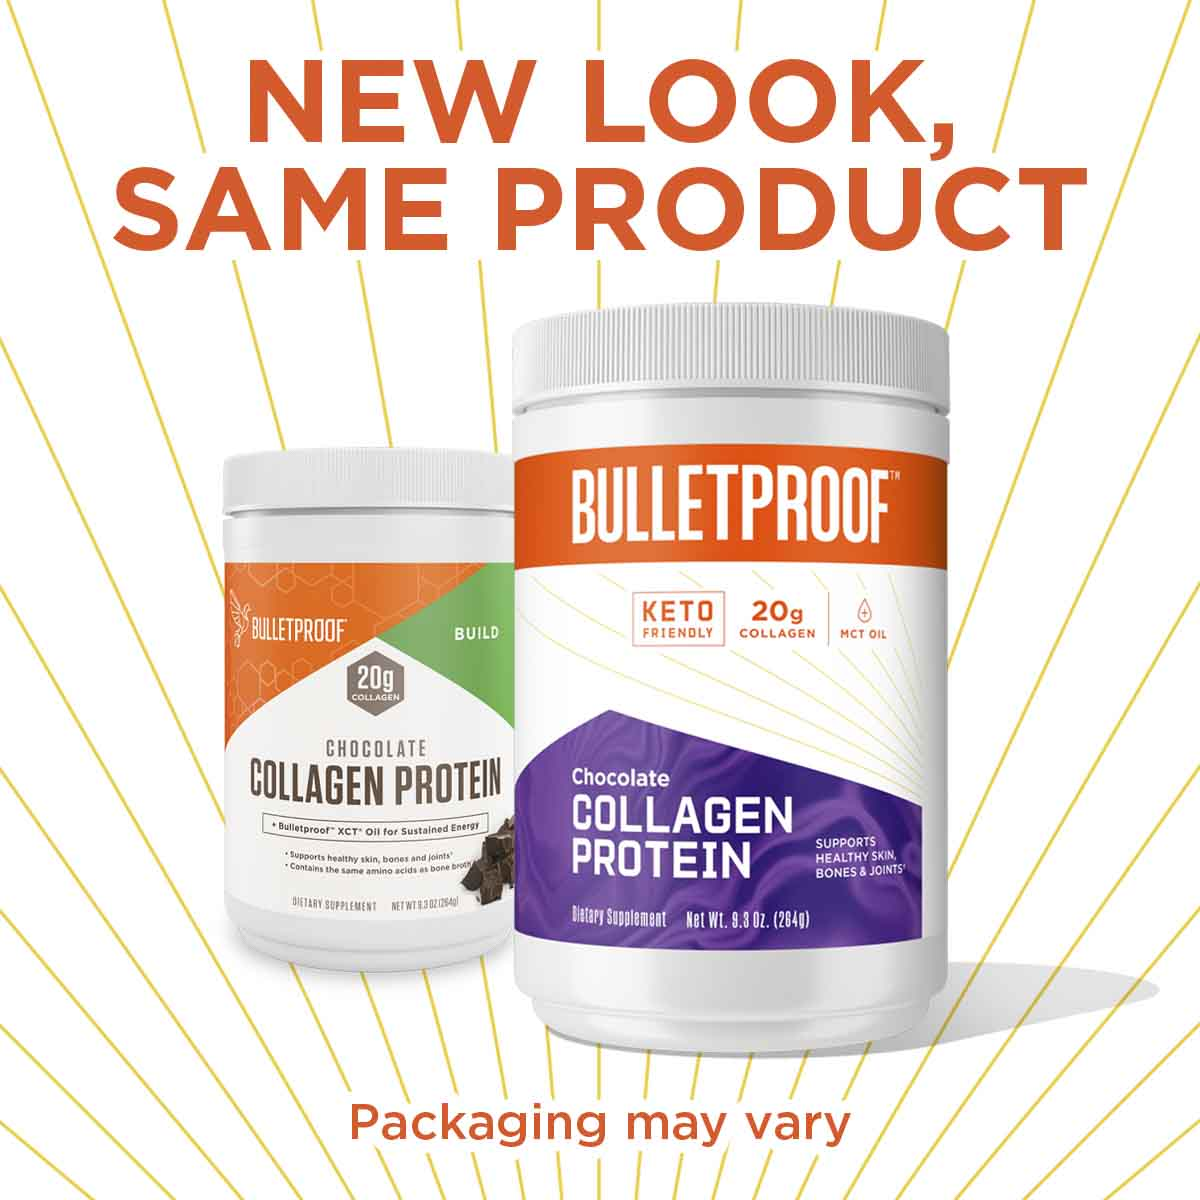 New Look, Same Product Bulletproof Chocolate Flavored Collagen Protein - 9.3 oz